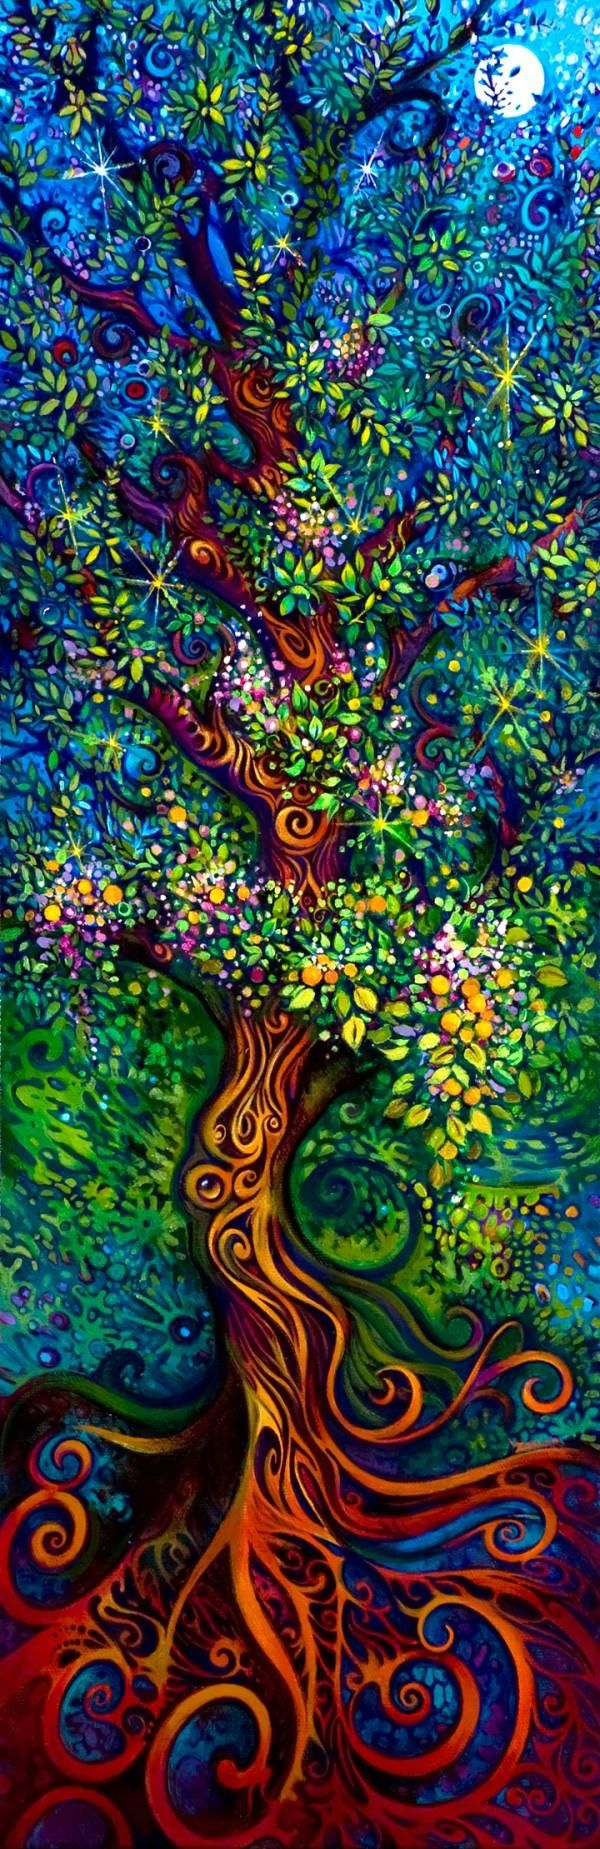 The Tree of Life by artist Laura Zollar: Tattoo Ideas, Trees Art, The Artists, Treeart, Color, Trees Of Life, Laura Zollar, Trees Paintings, Tree Of Life